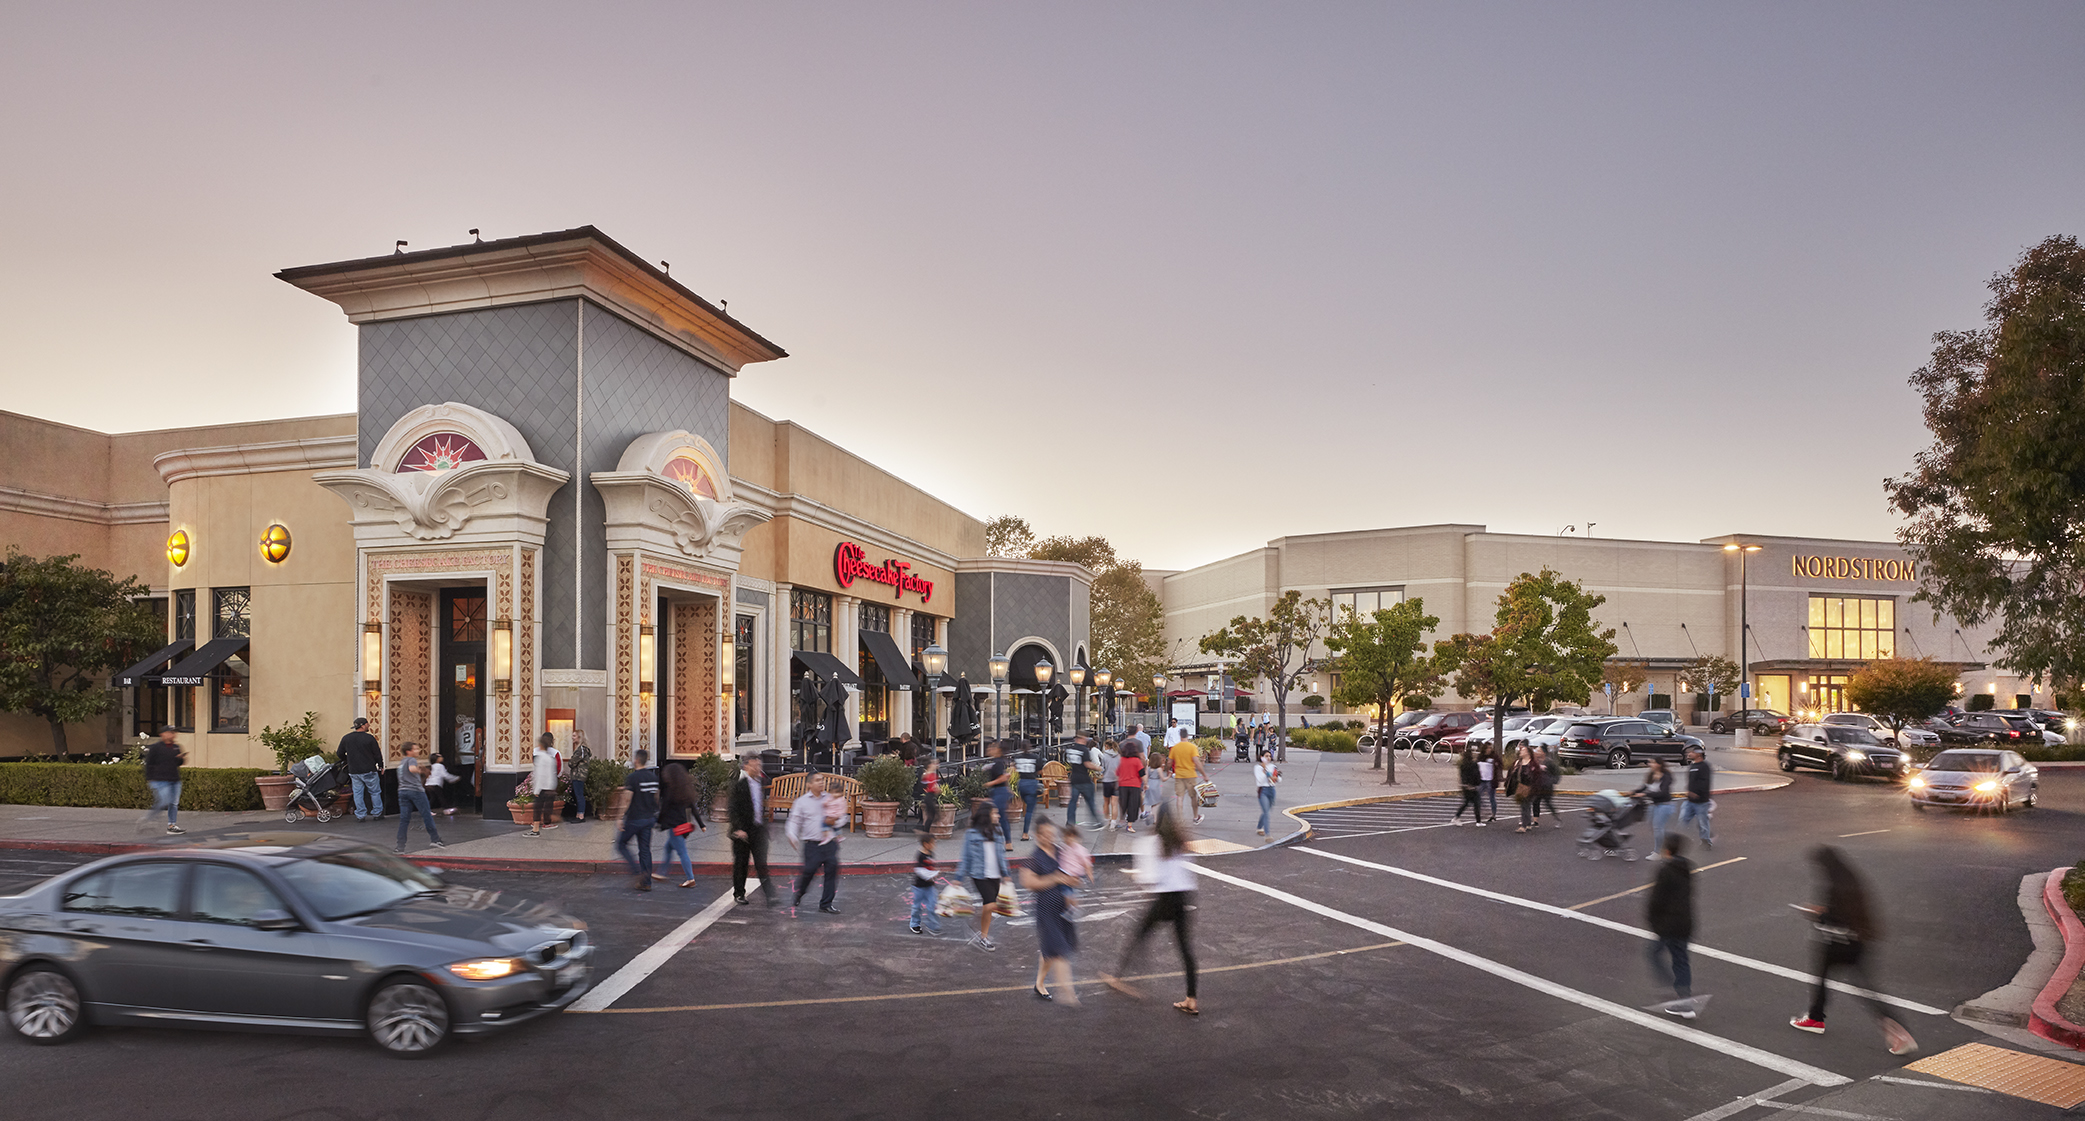 Cheesecake Factory and Nordstrom entry at The Village